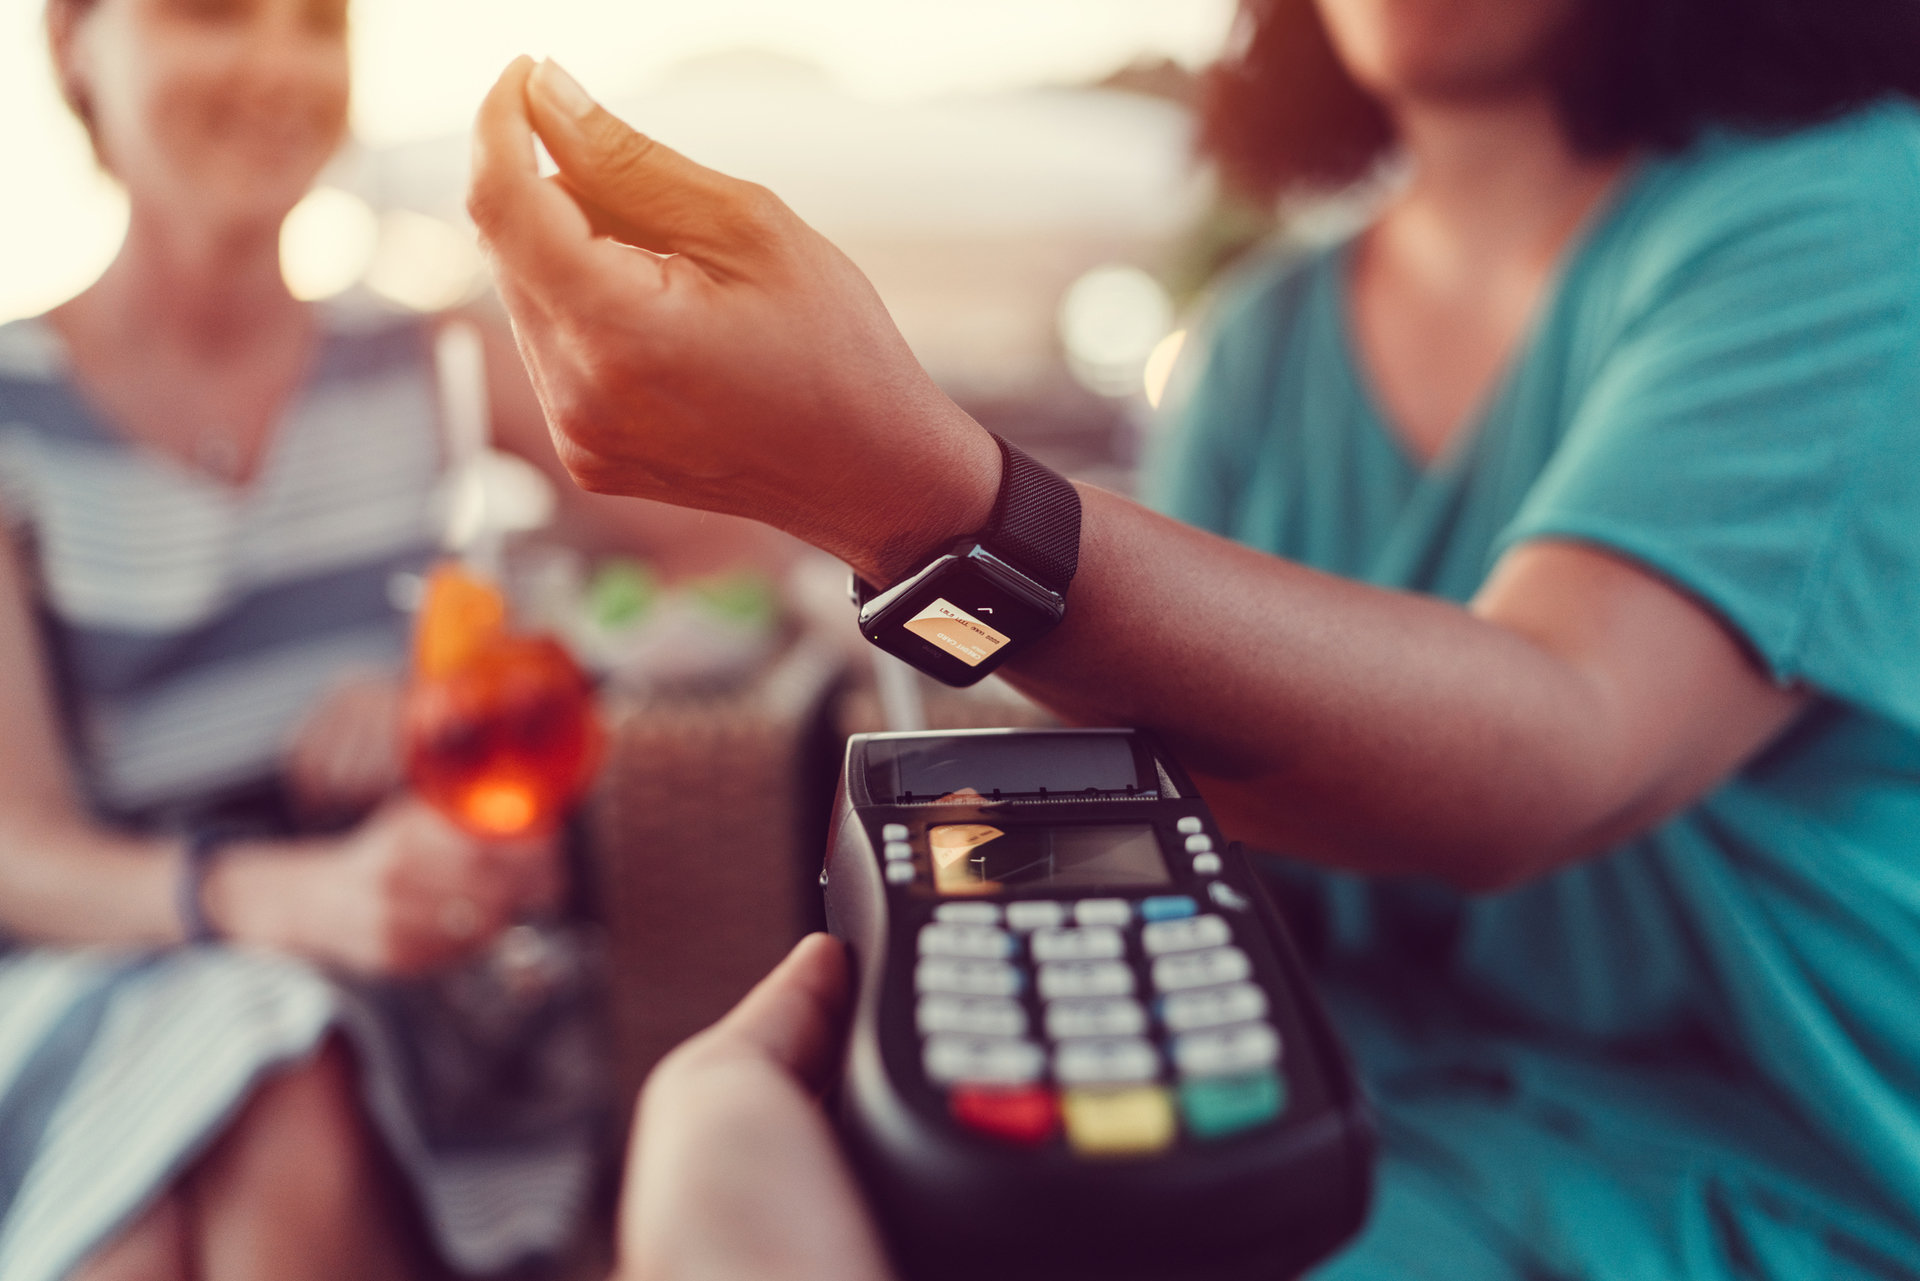 New trends in mobile payments. Faster, safer and more convenient.